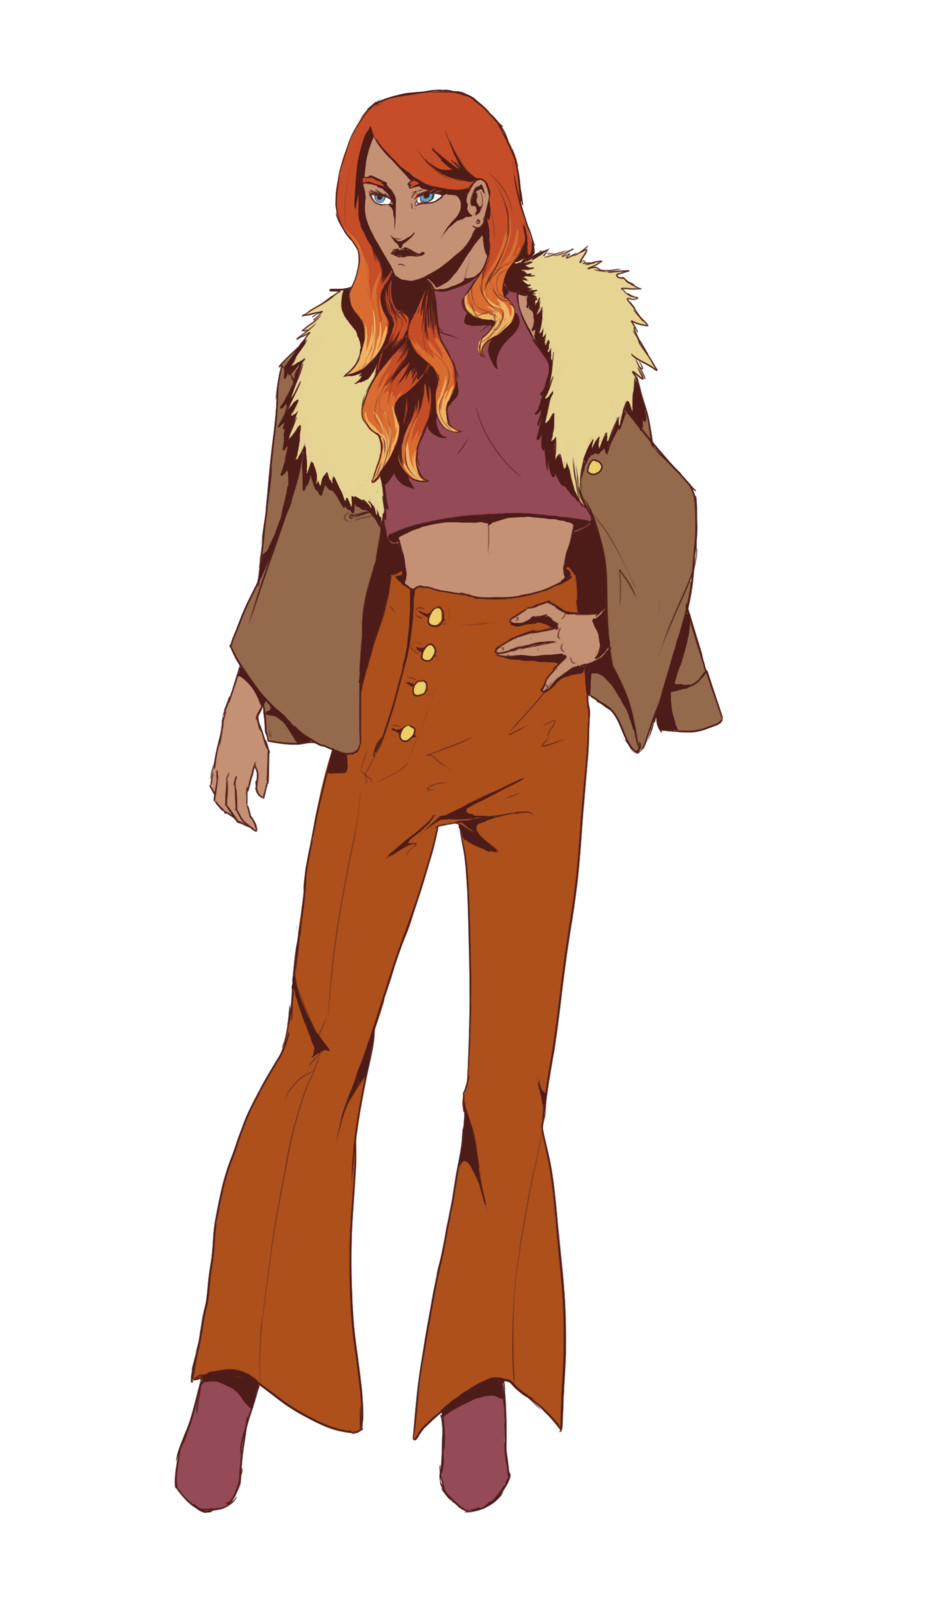 Design for Evangeline, an aspiring fashion designer who died young in the 70's